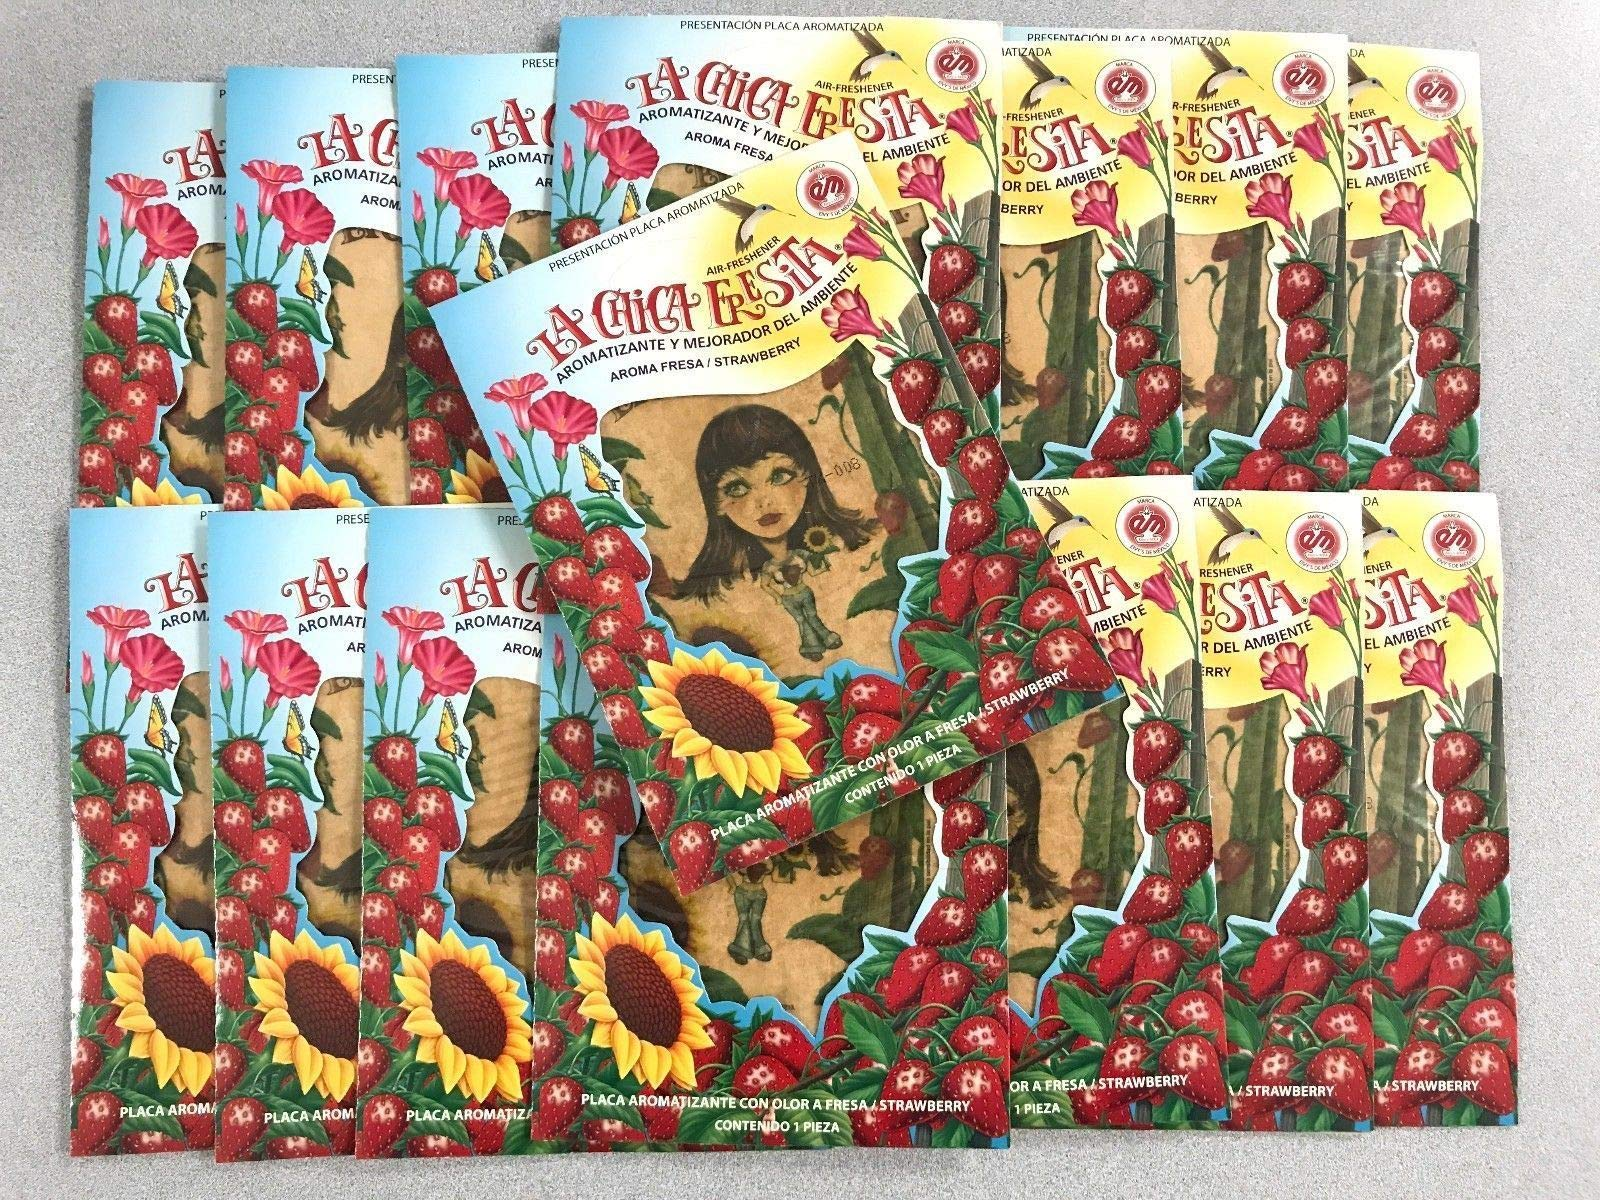 150PC LA CHICA FRESITA Car Air Freshener Strawberry Fresa Aroma BUNDLE